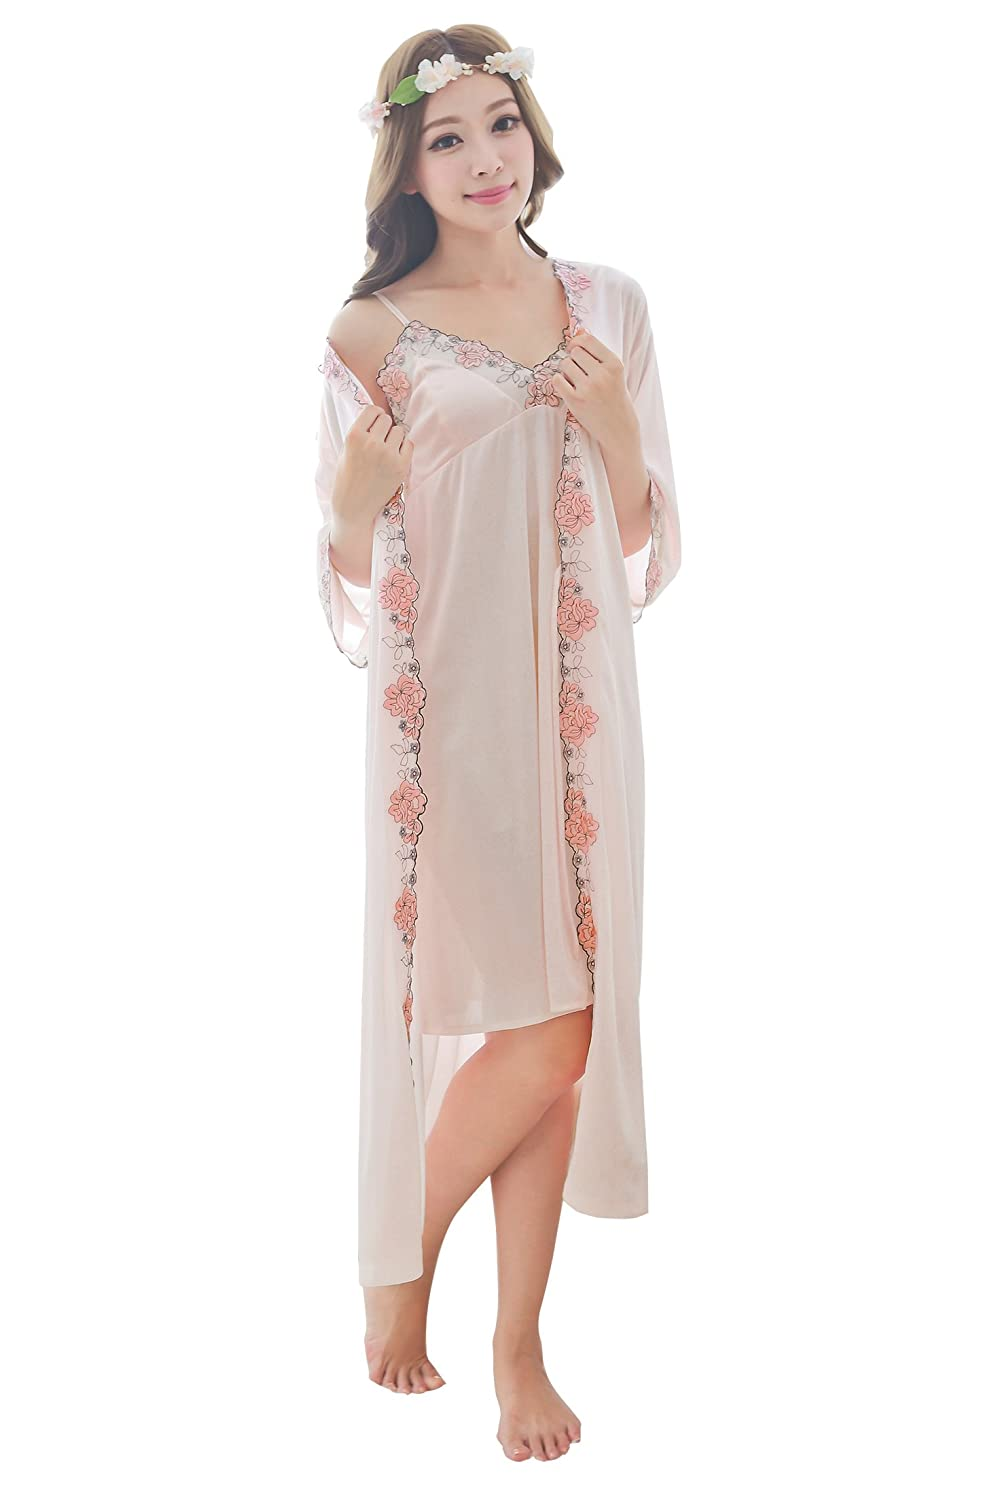 f3928523c72 Material Polyester + Spandex   Machine washable  Tumble dry low. Luxury  Women s Embroidered Floral Lace Trim Satin Straps Silky Long Sleepwear  Chemise Dress ...